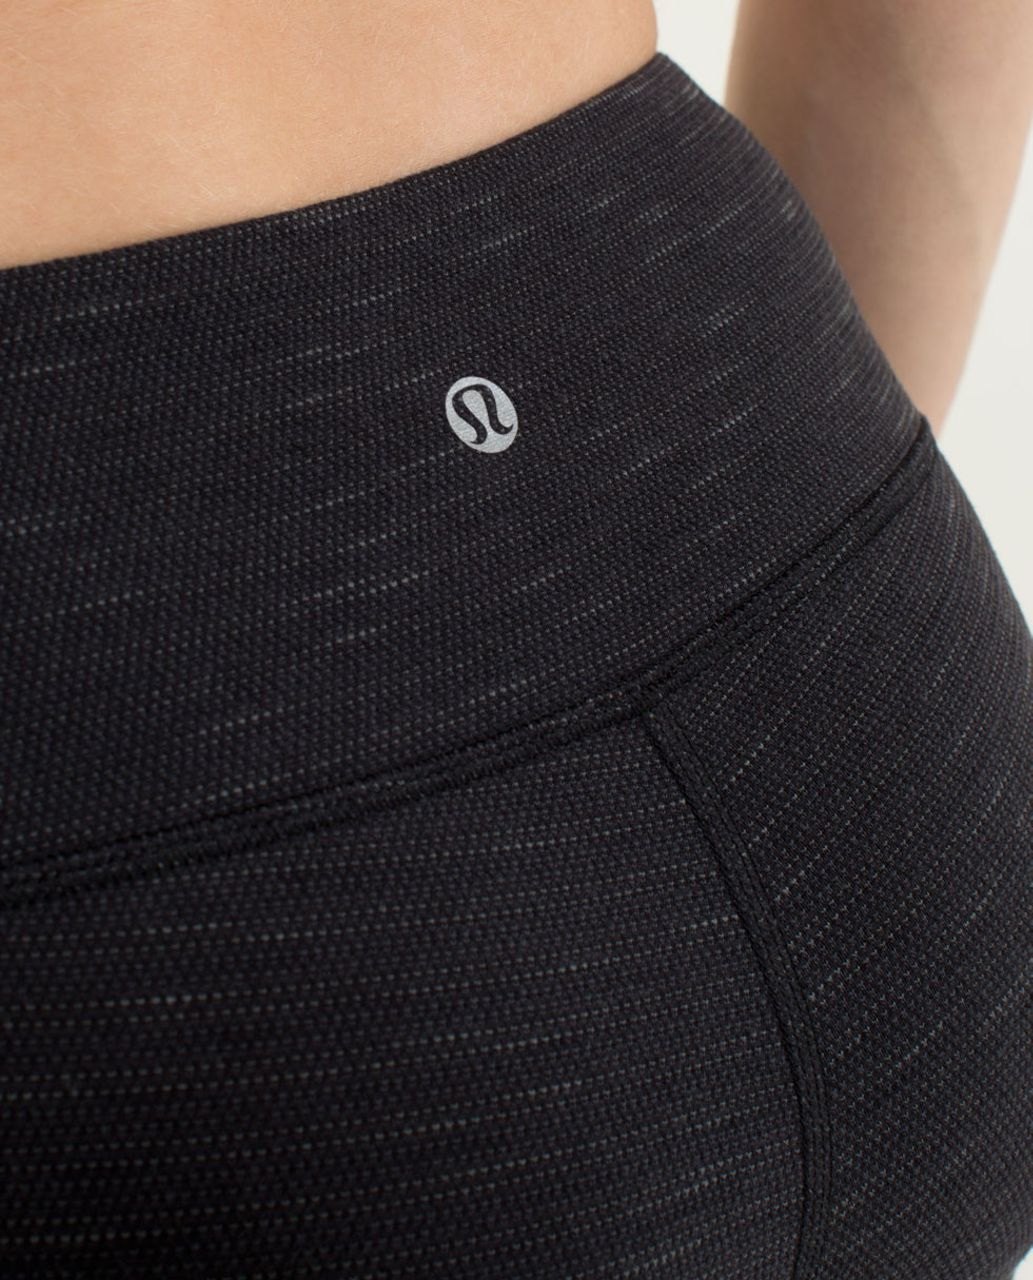 Lululemon Wunder Under Crop - Pique Luon Black / Black